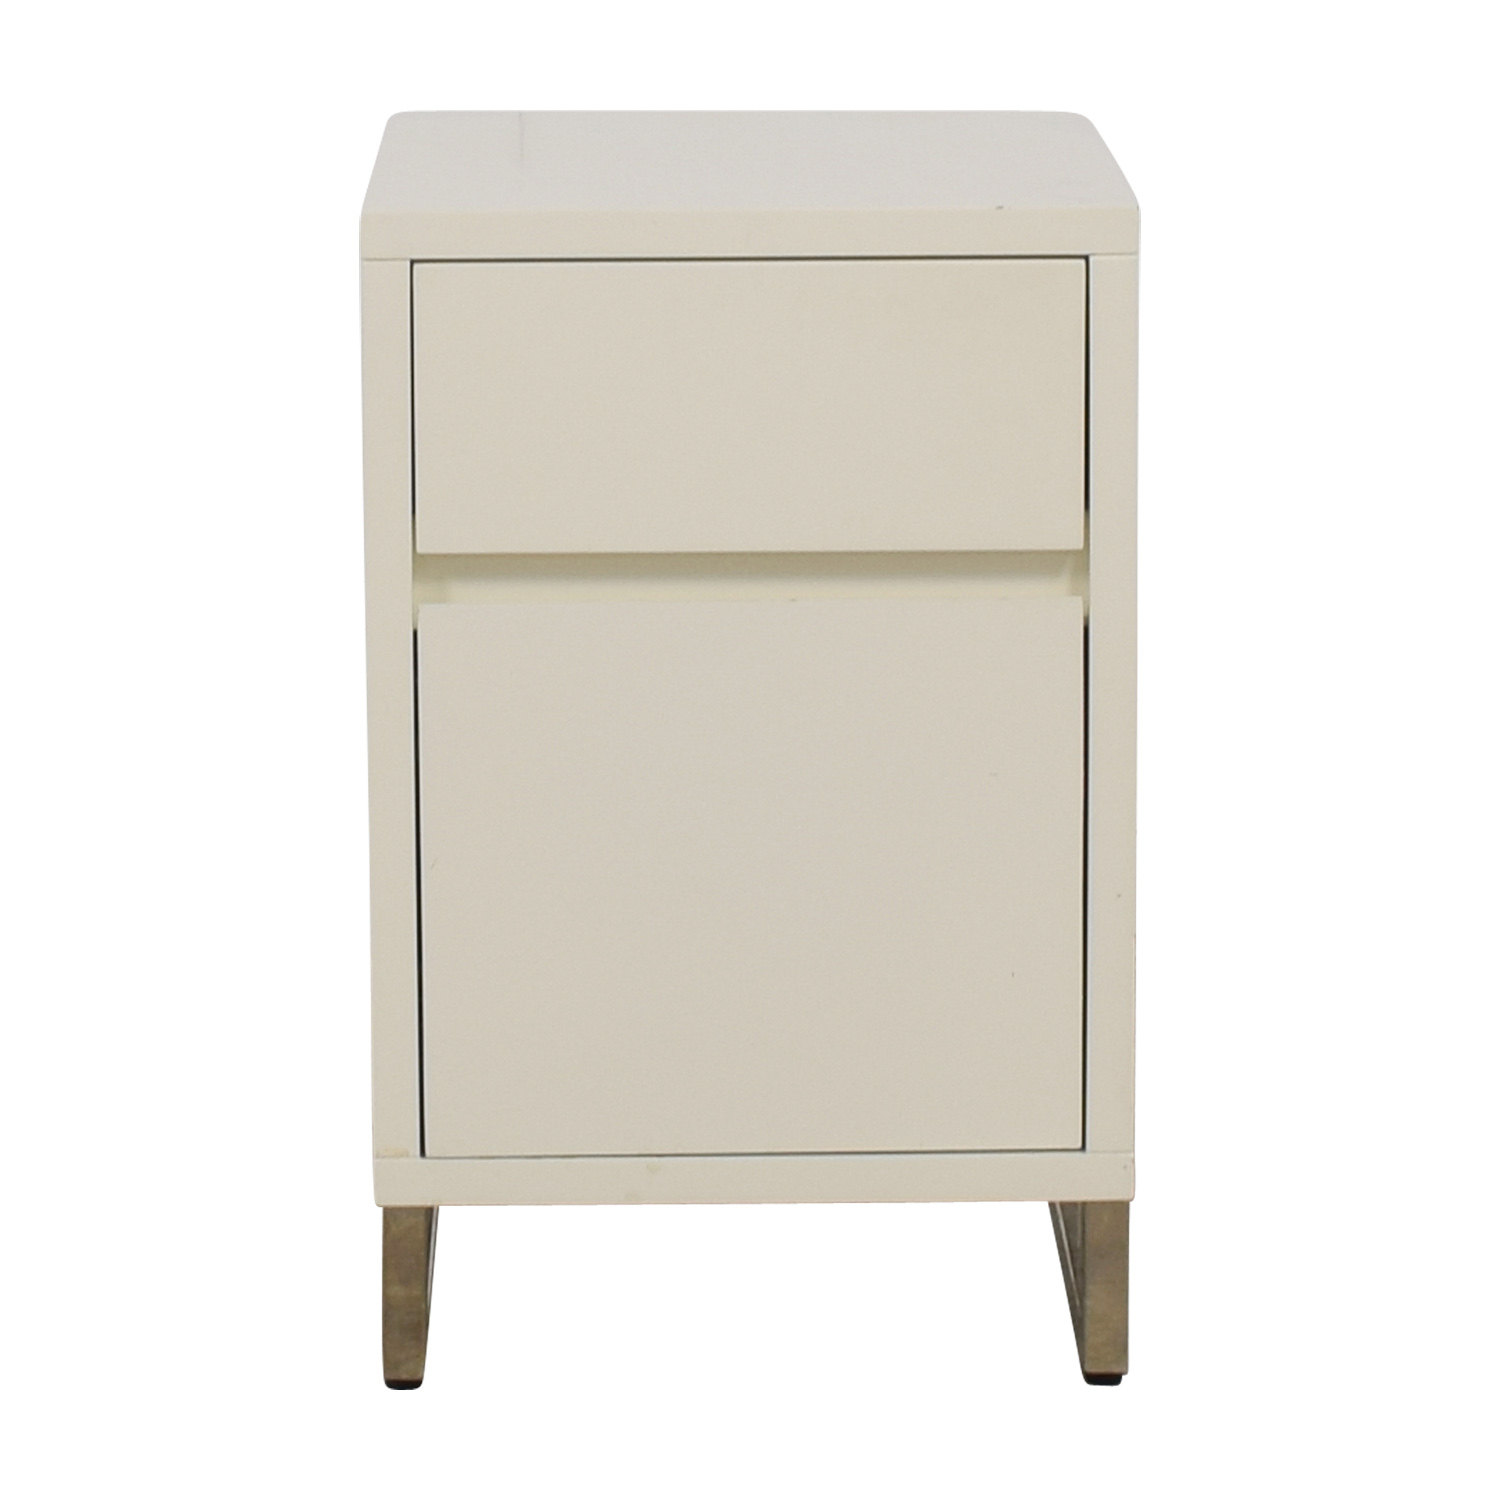 West Elm West Elm White Single Drawer Nightstand with Storage dimensions